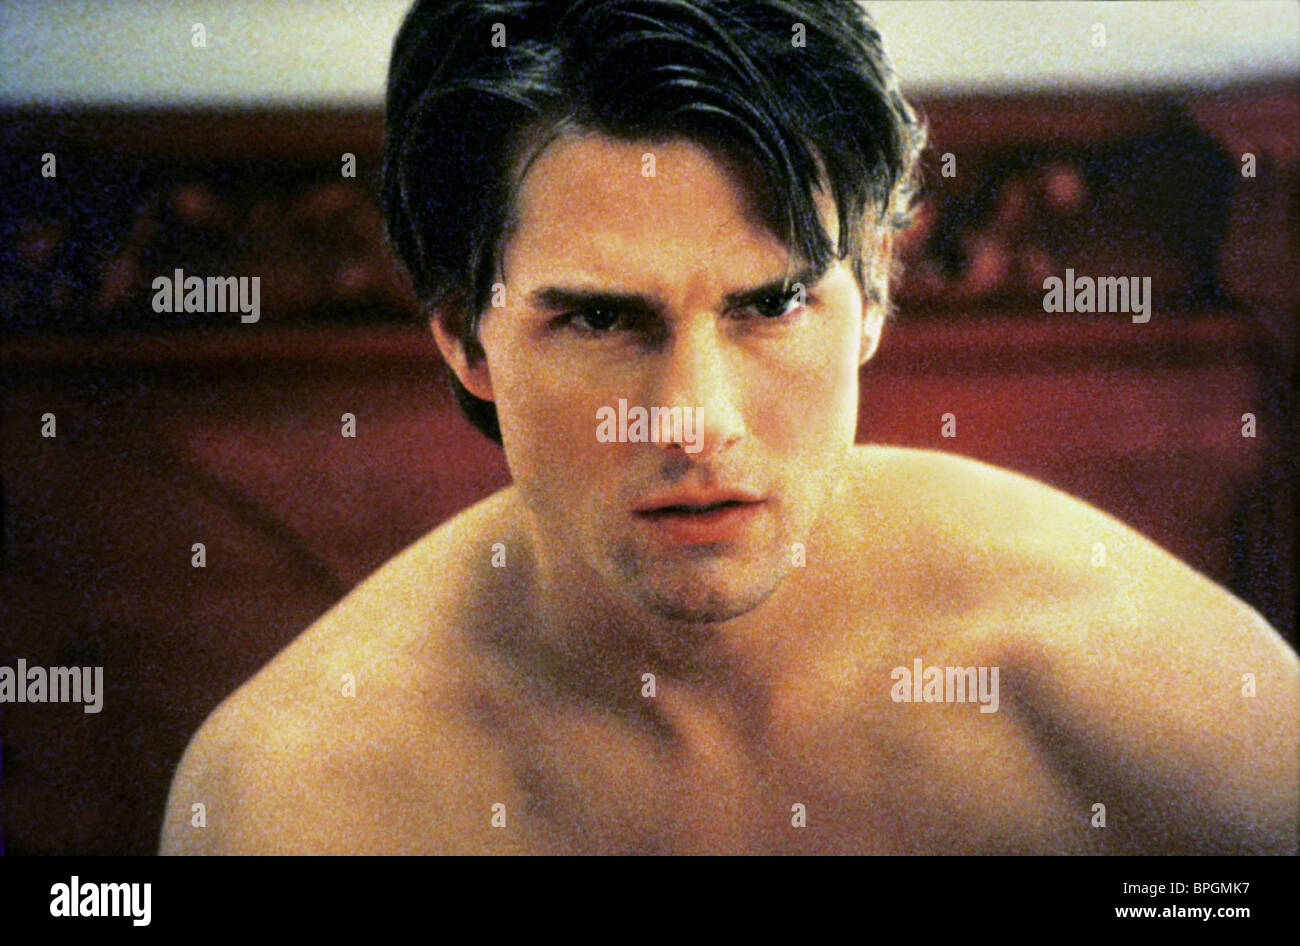 TOM CRUISE EYES WIDE SHUT (1999) - Stock Image